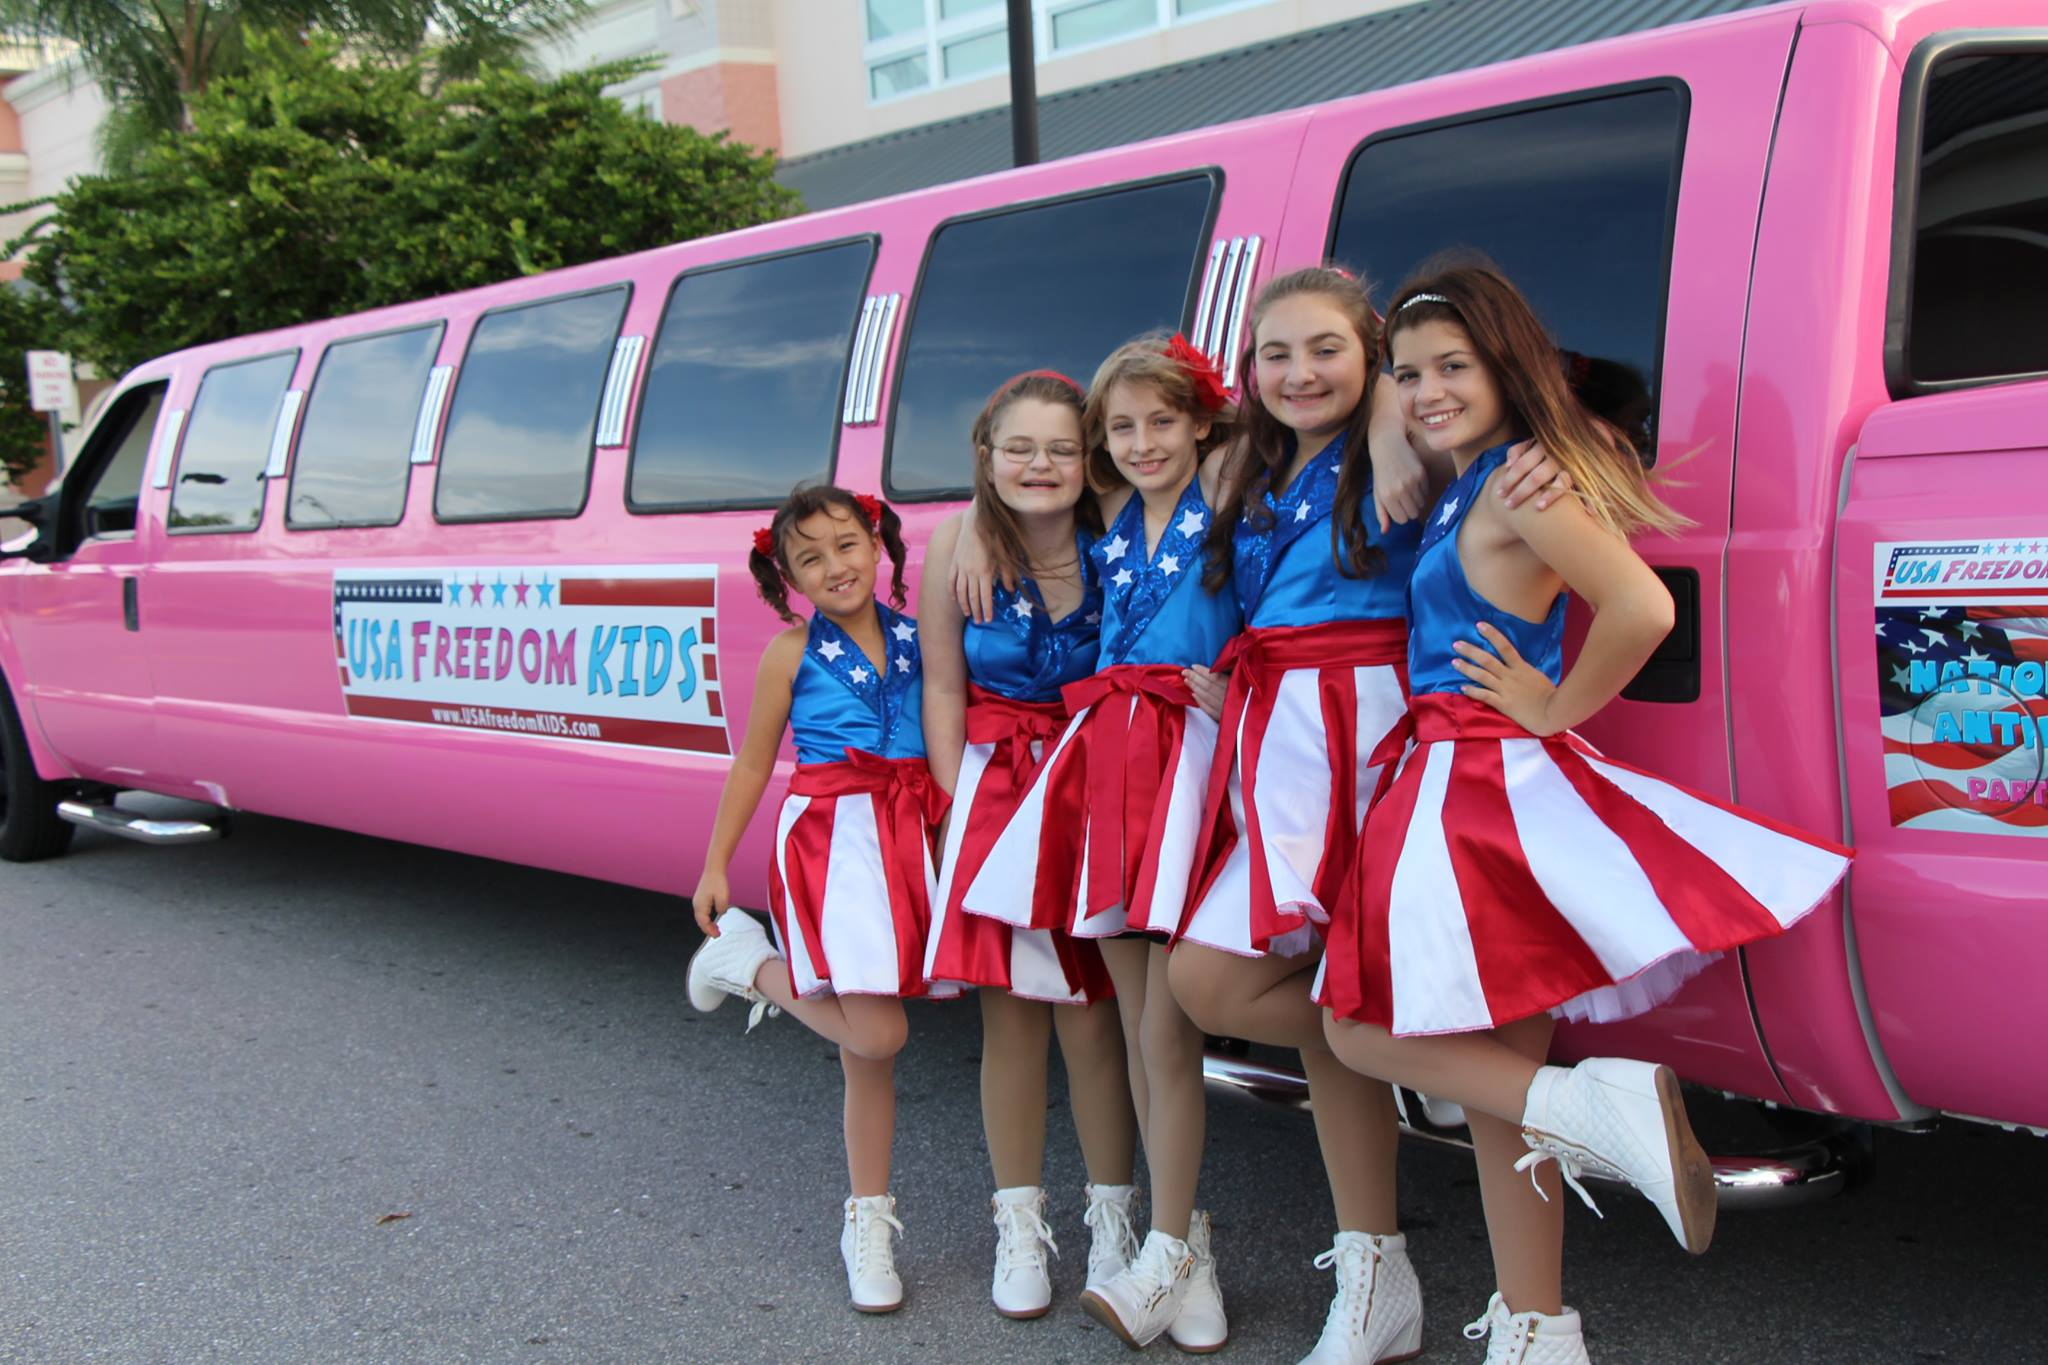 The  USA Freedom Kids  is a girl group based in Florida. They performed for Donald Trump at the Republican presidential frontrunner's rally on Jan. 13.